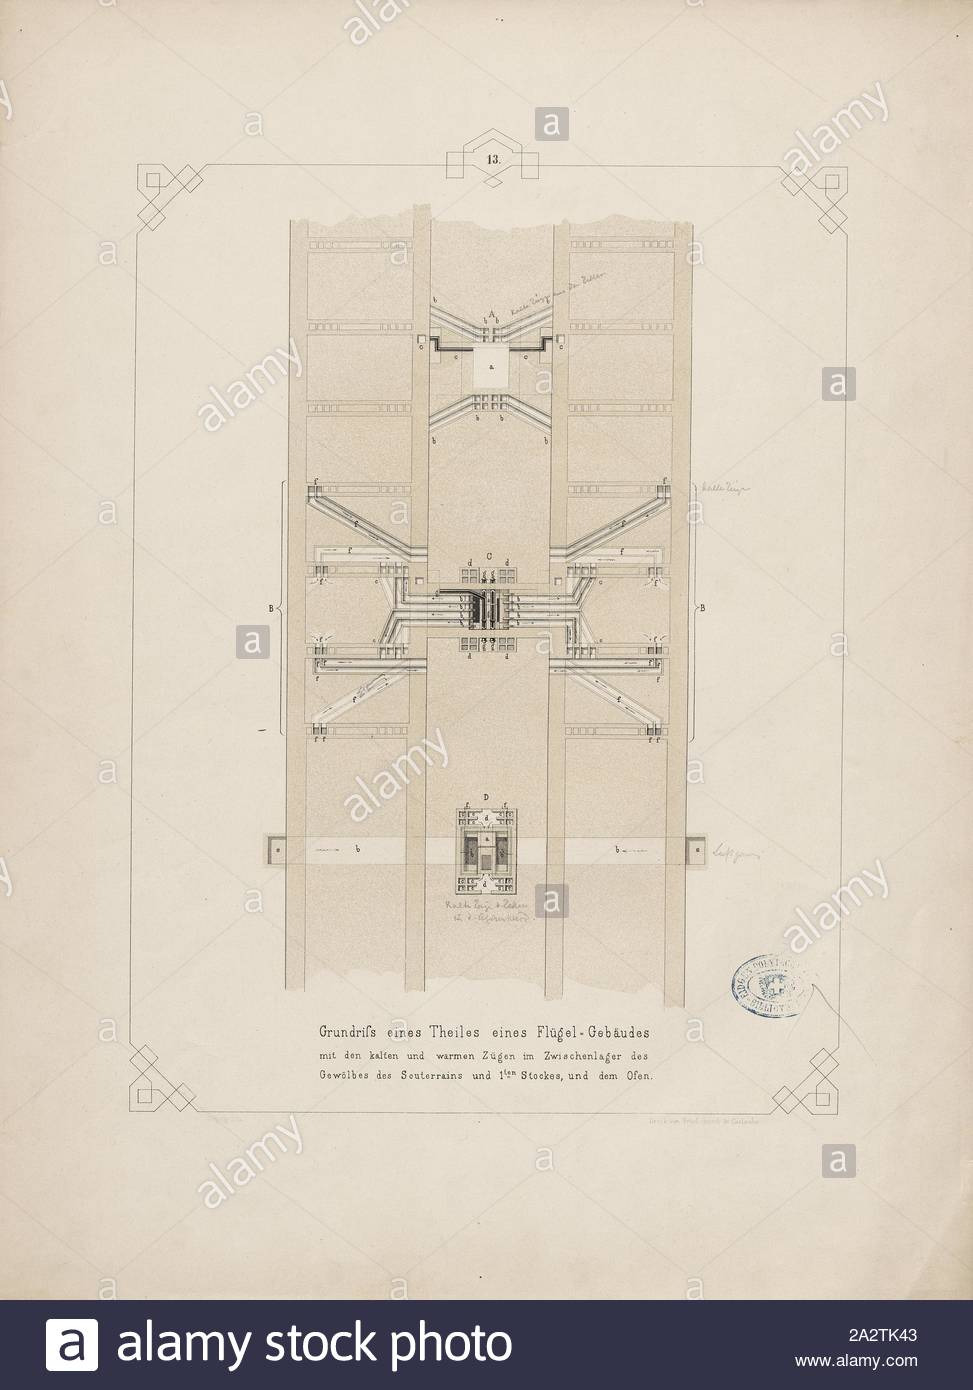 Storage Building House Plans Luxury Plan Of Part Of A Wing Building with Cold and Warm Features